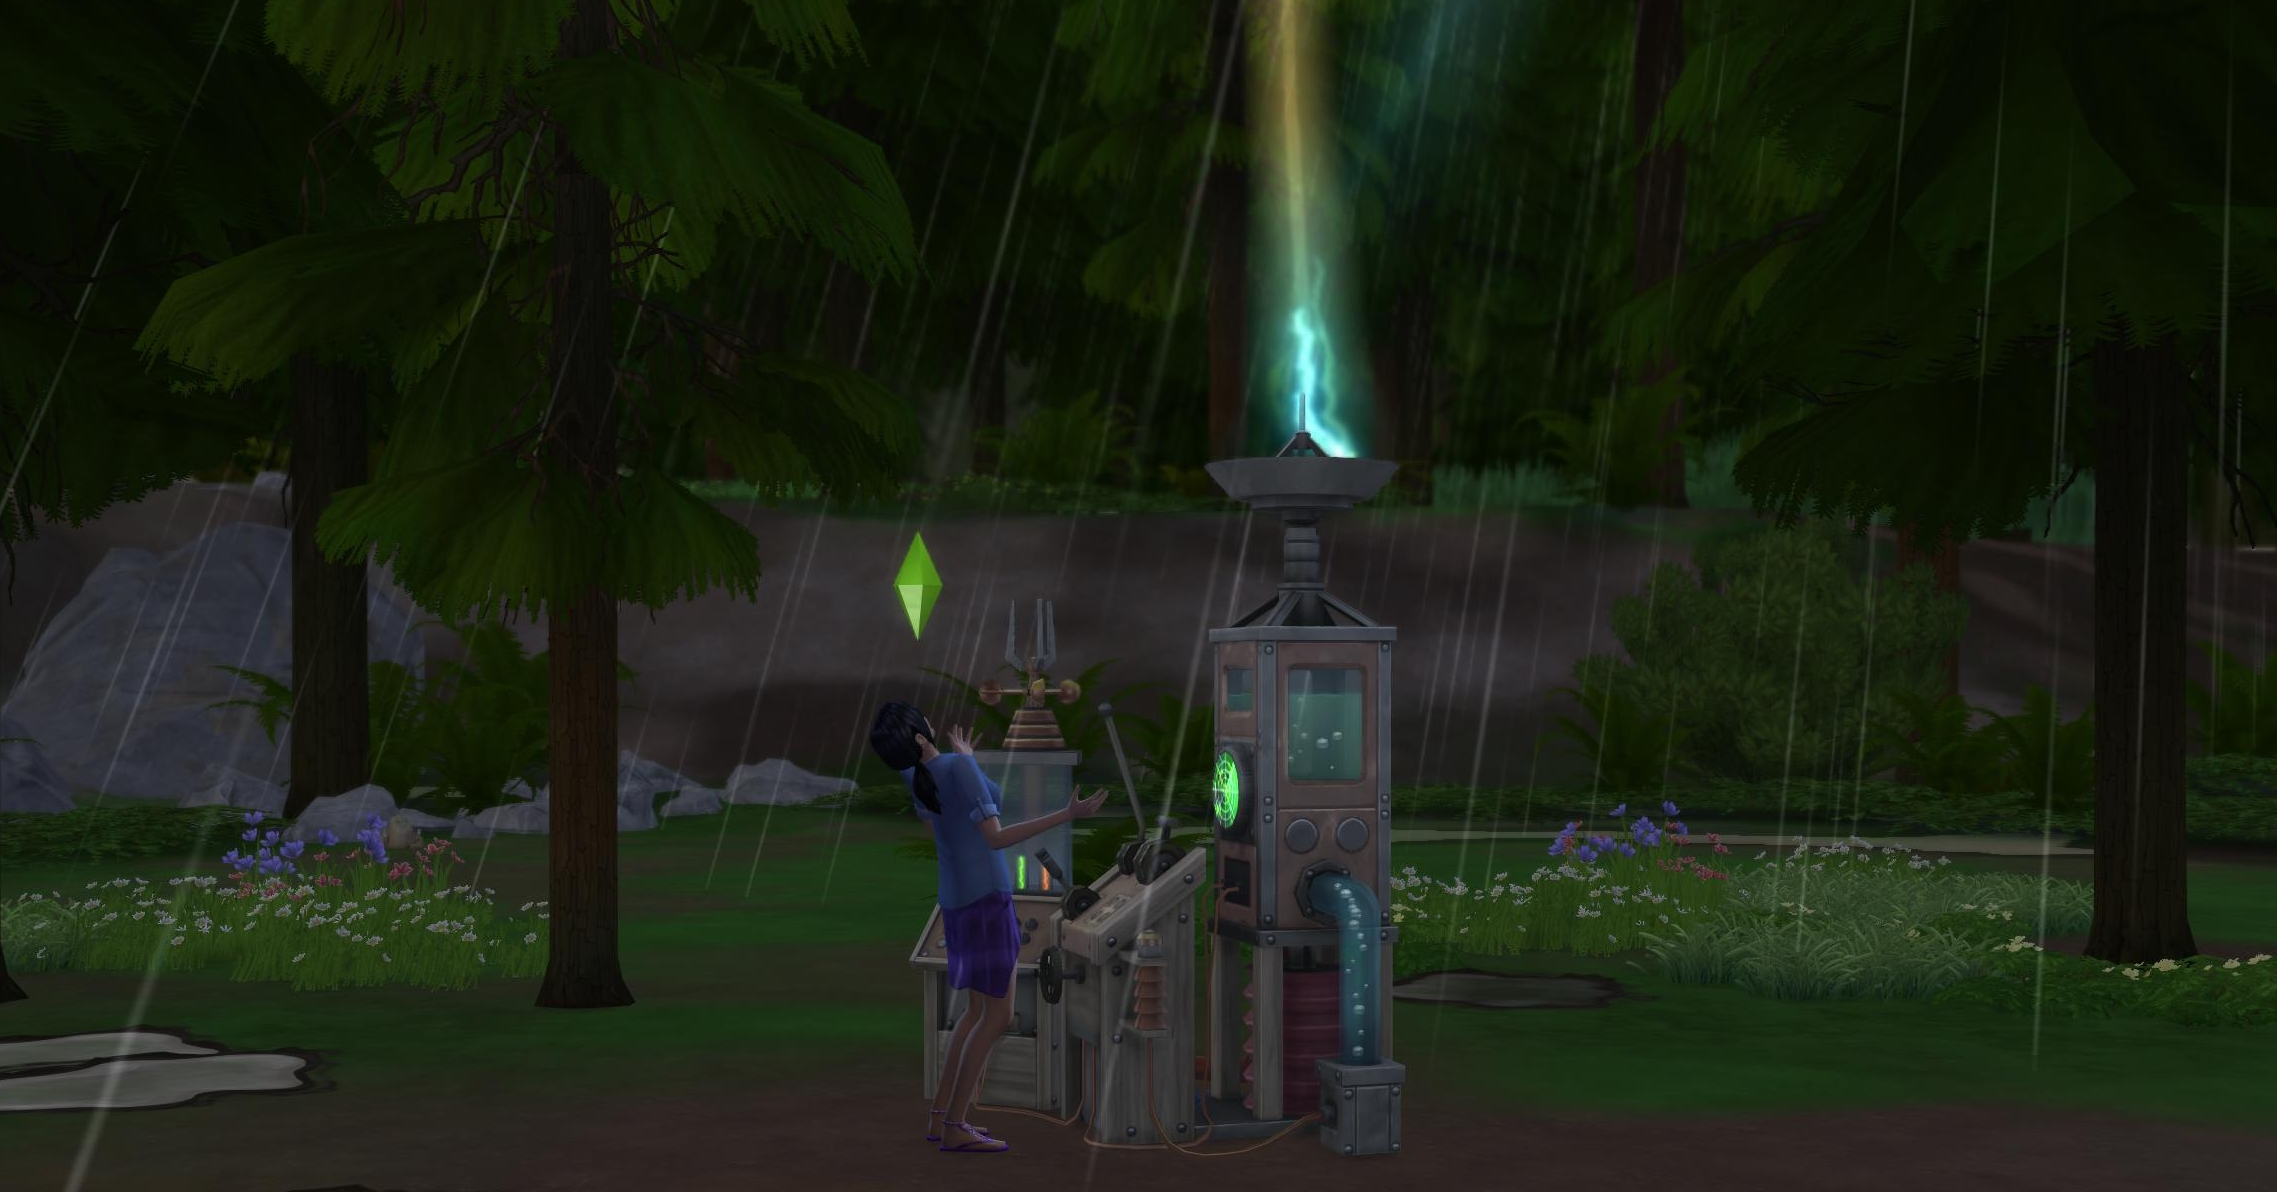 Dr. June's Weather controller machine in The Sims 4 Sesasons Expansion Pack